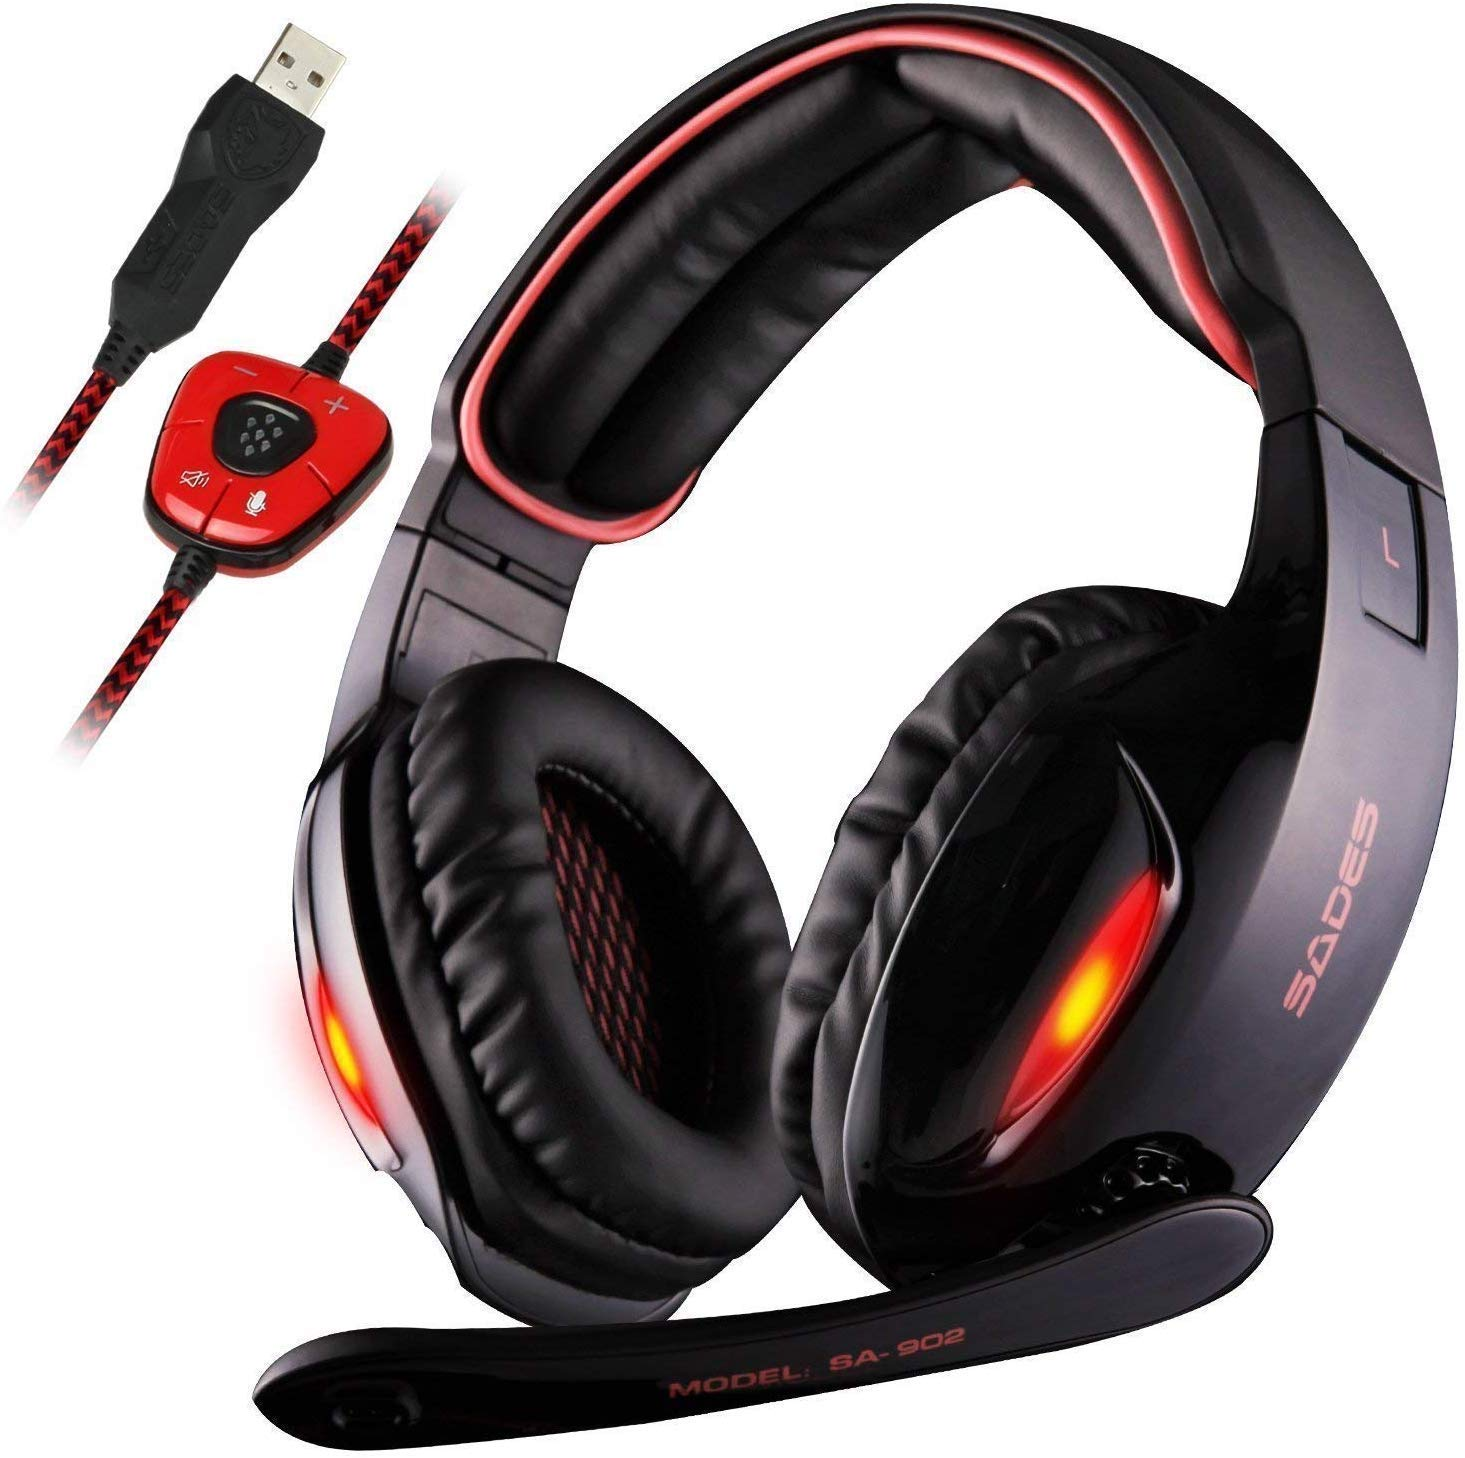 Channel Surround Headphones Revolution Canceling